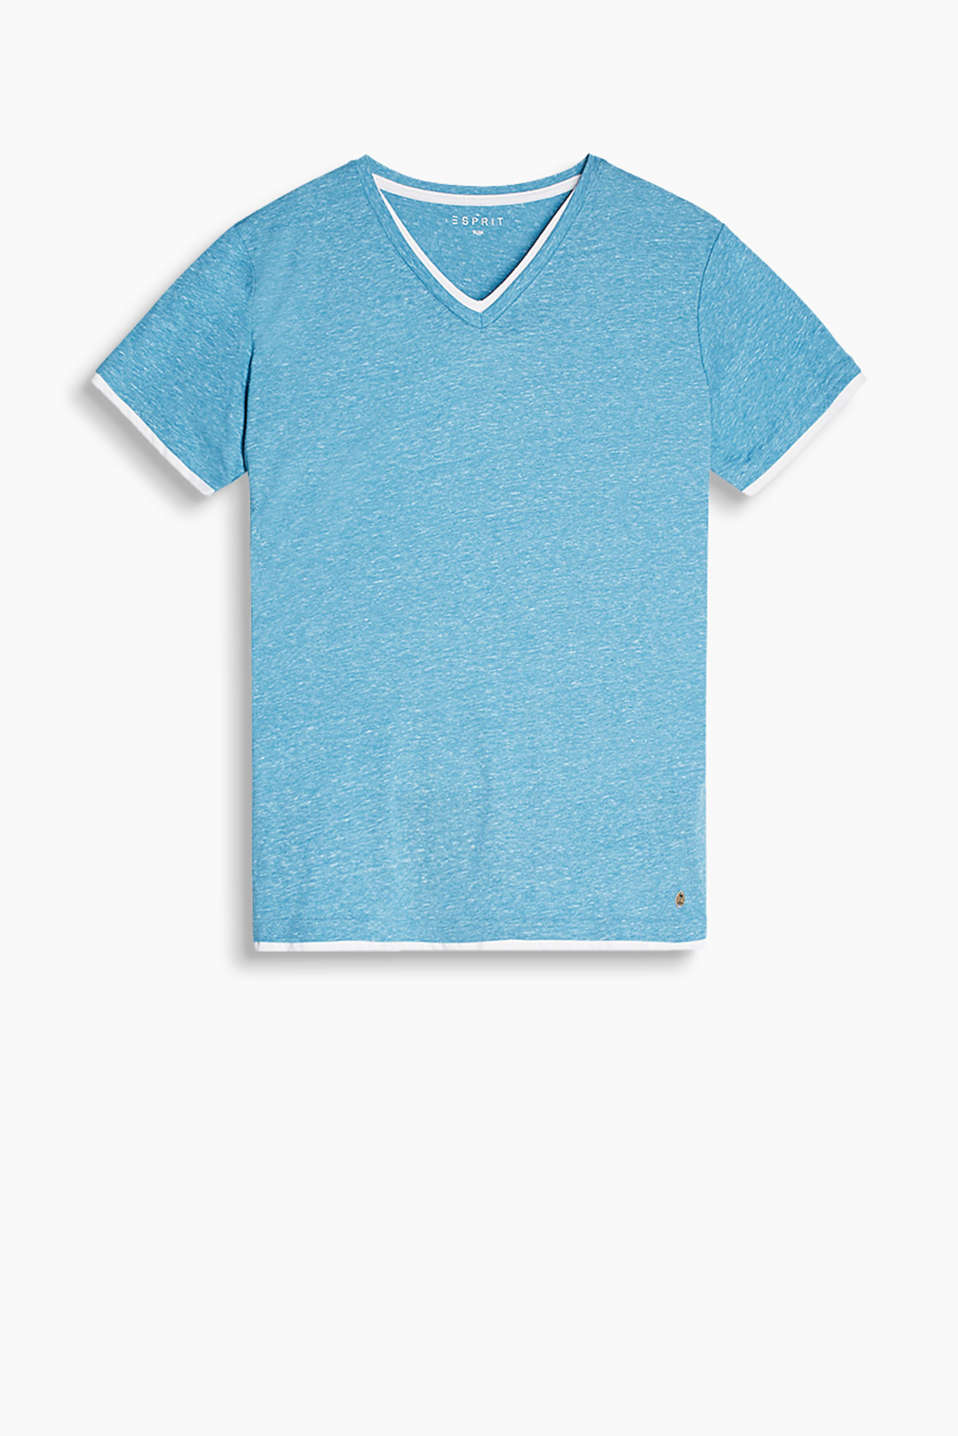 V-neck T-shirt in a stylish layered look